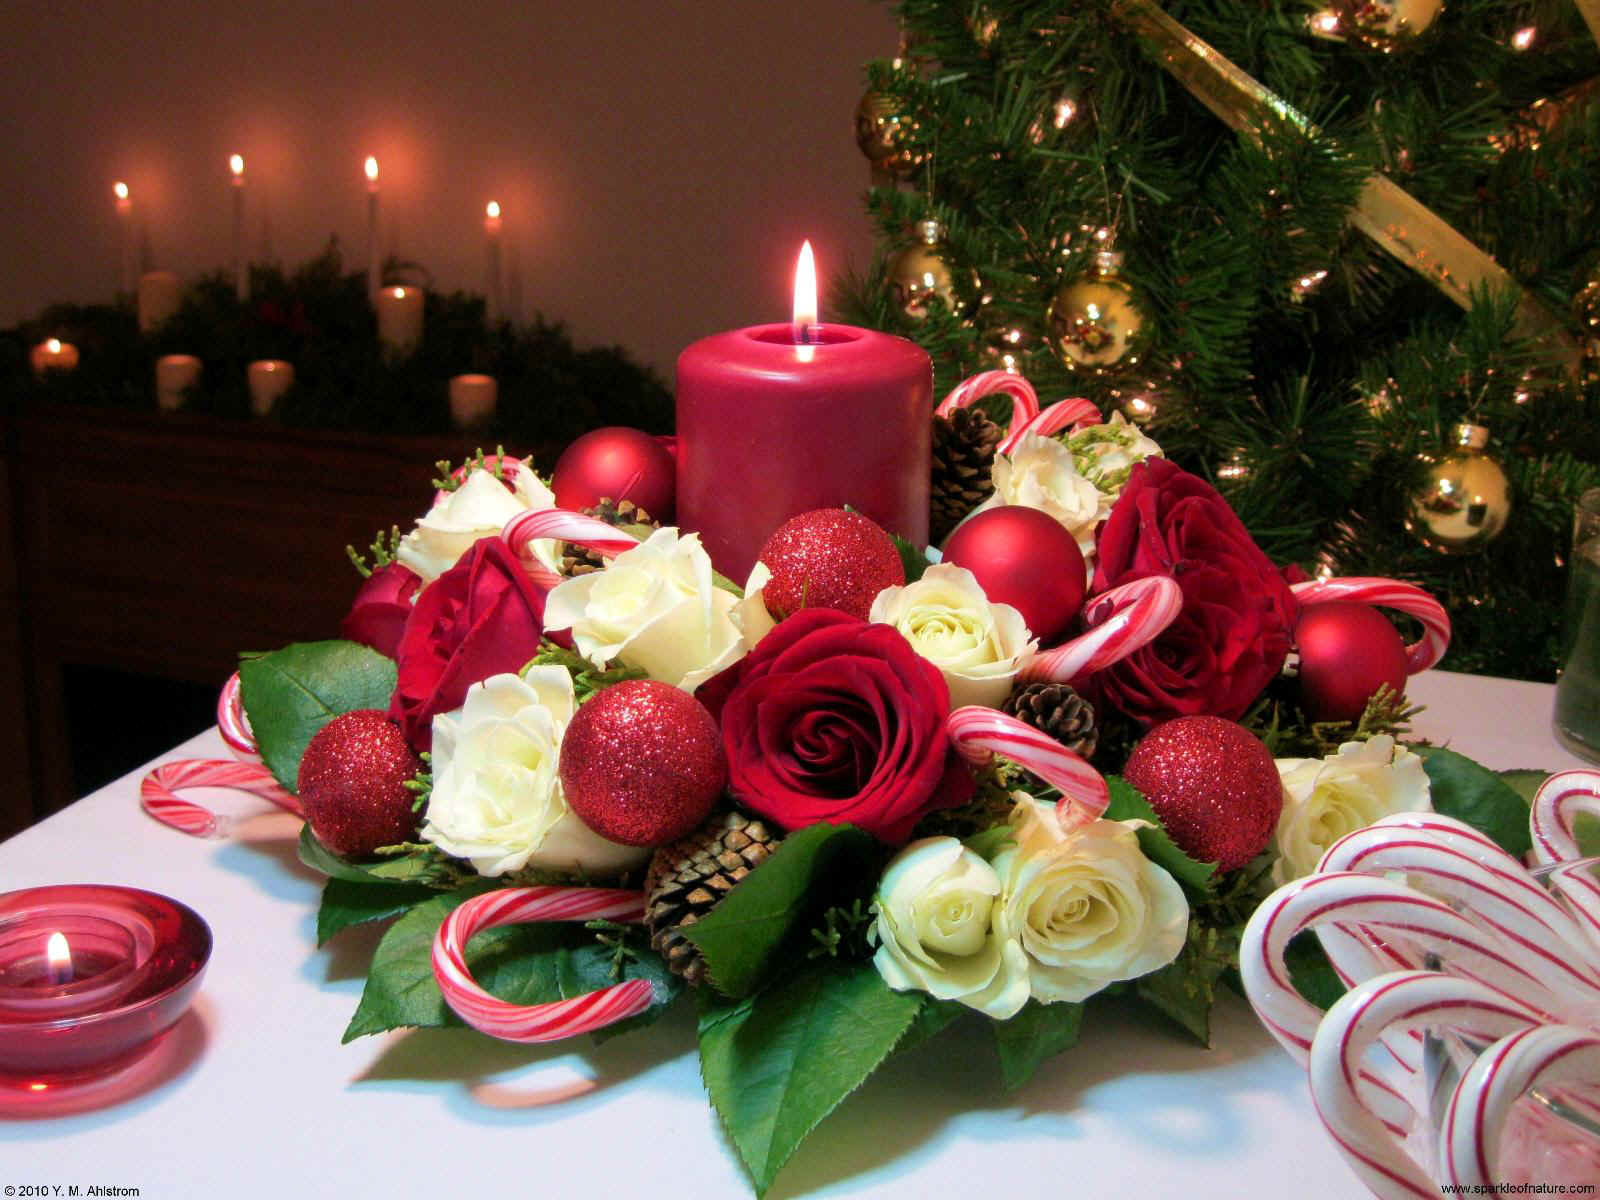 Wallpapers christmas candle wallpapers download christmas candle